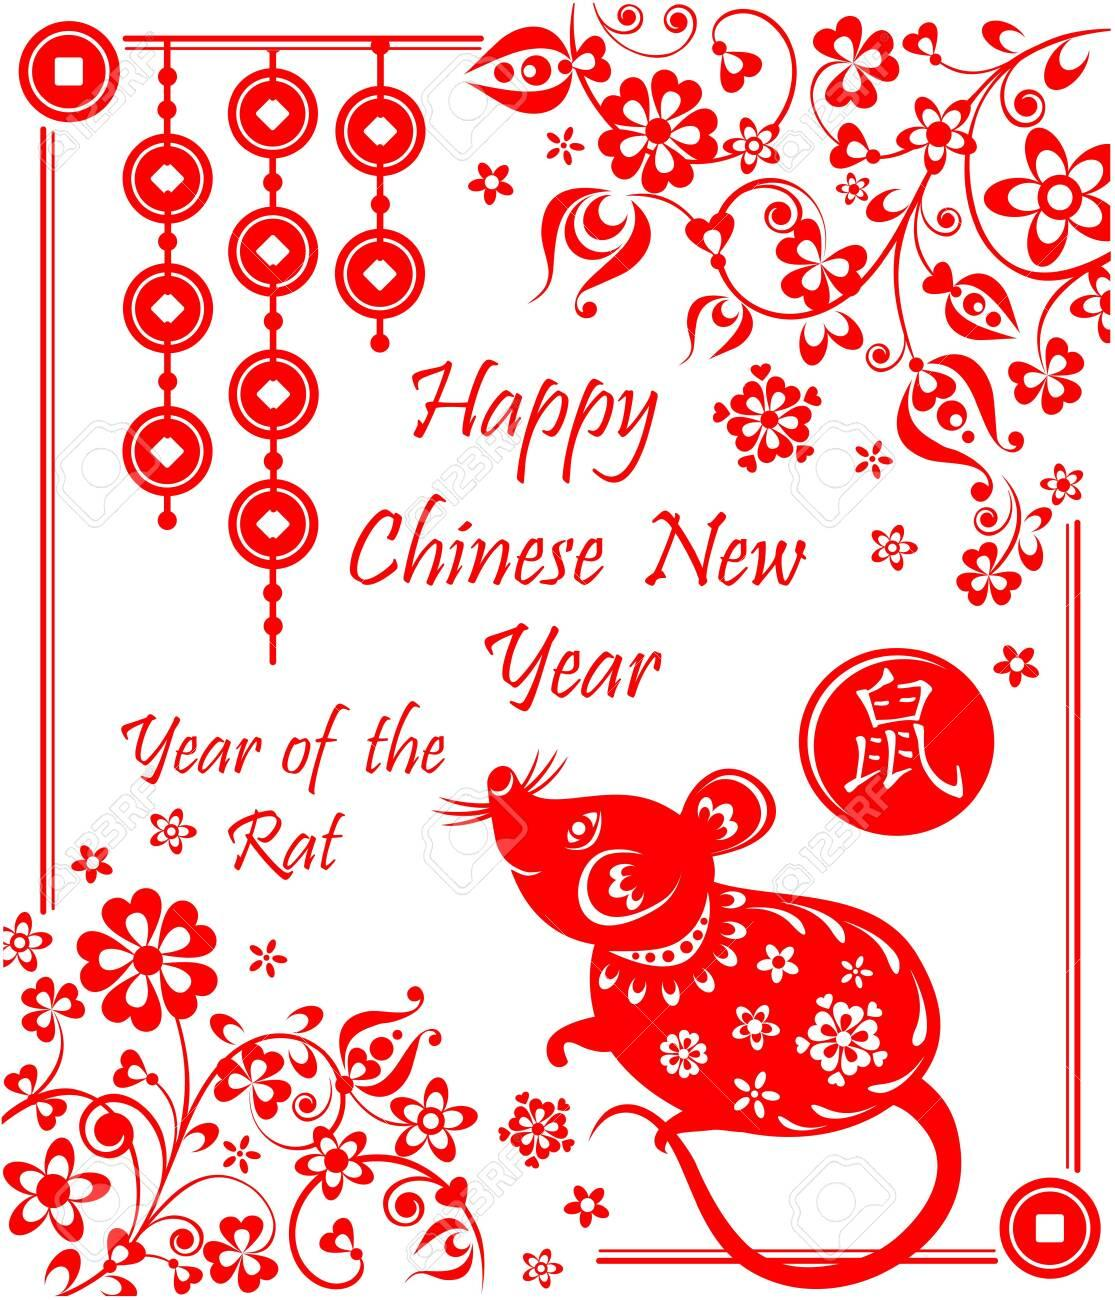 Happy Chinese New Year 2020 greeting card, greeting card, rat,..